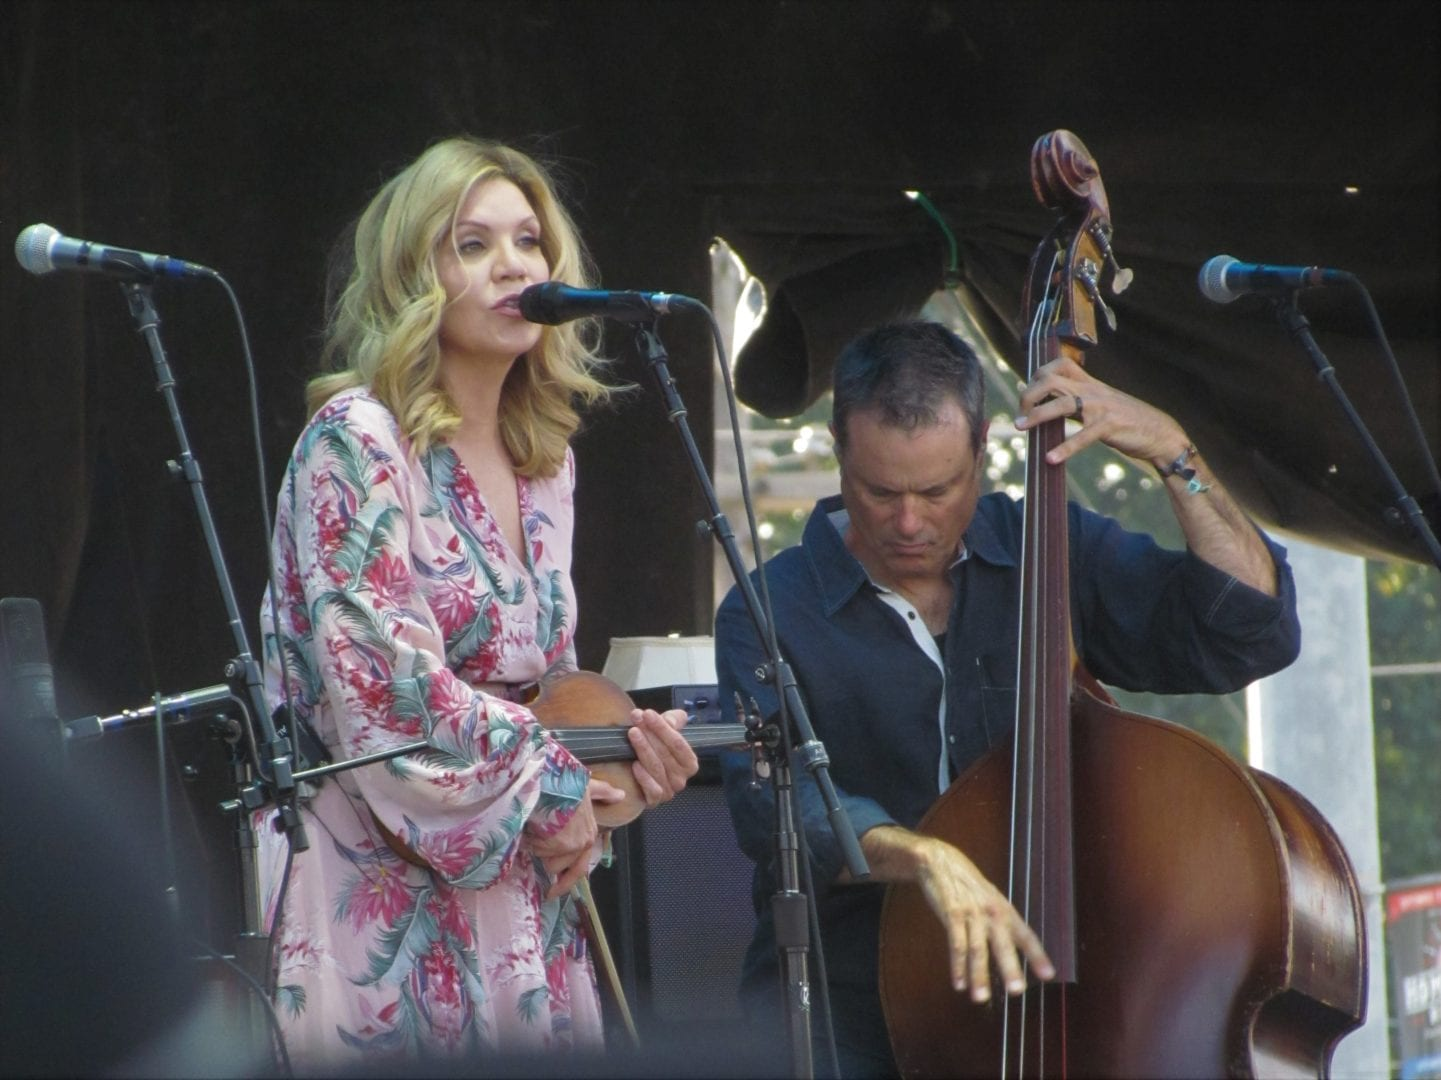 Alison Krauss singing while holding her violin